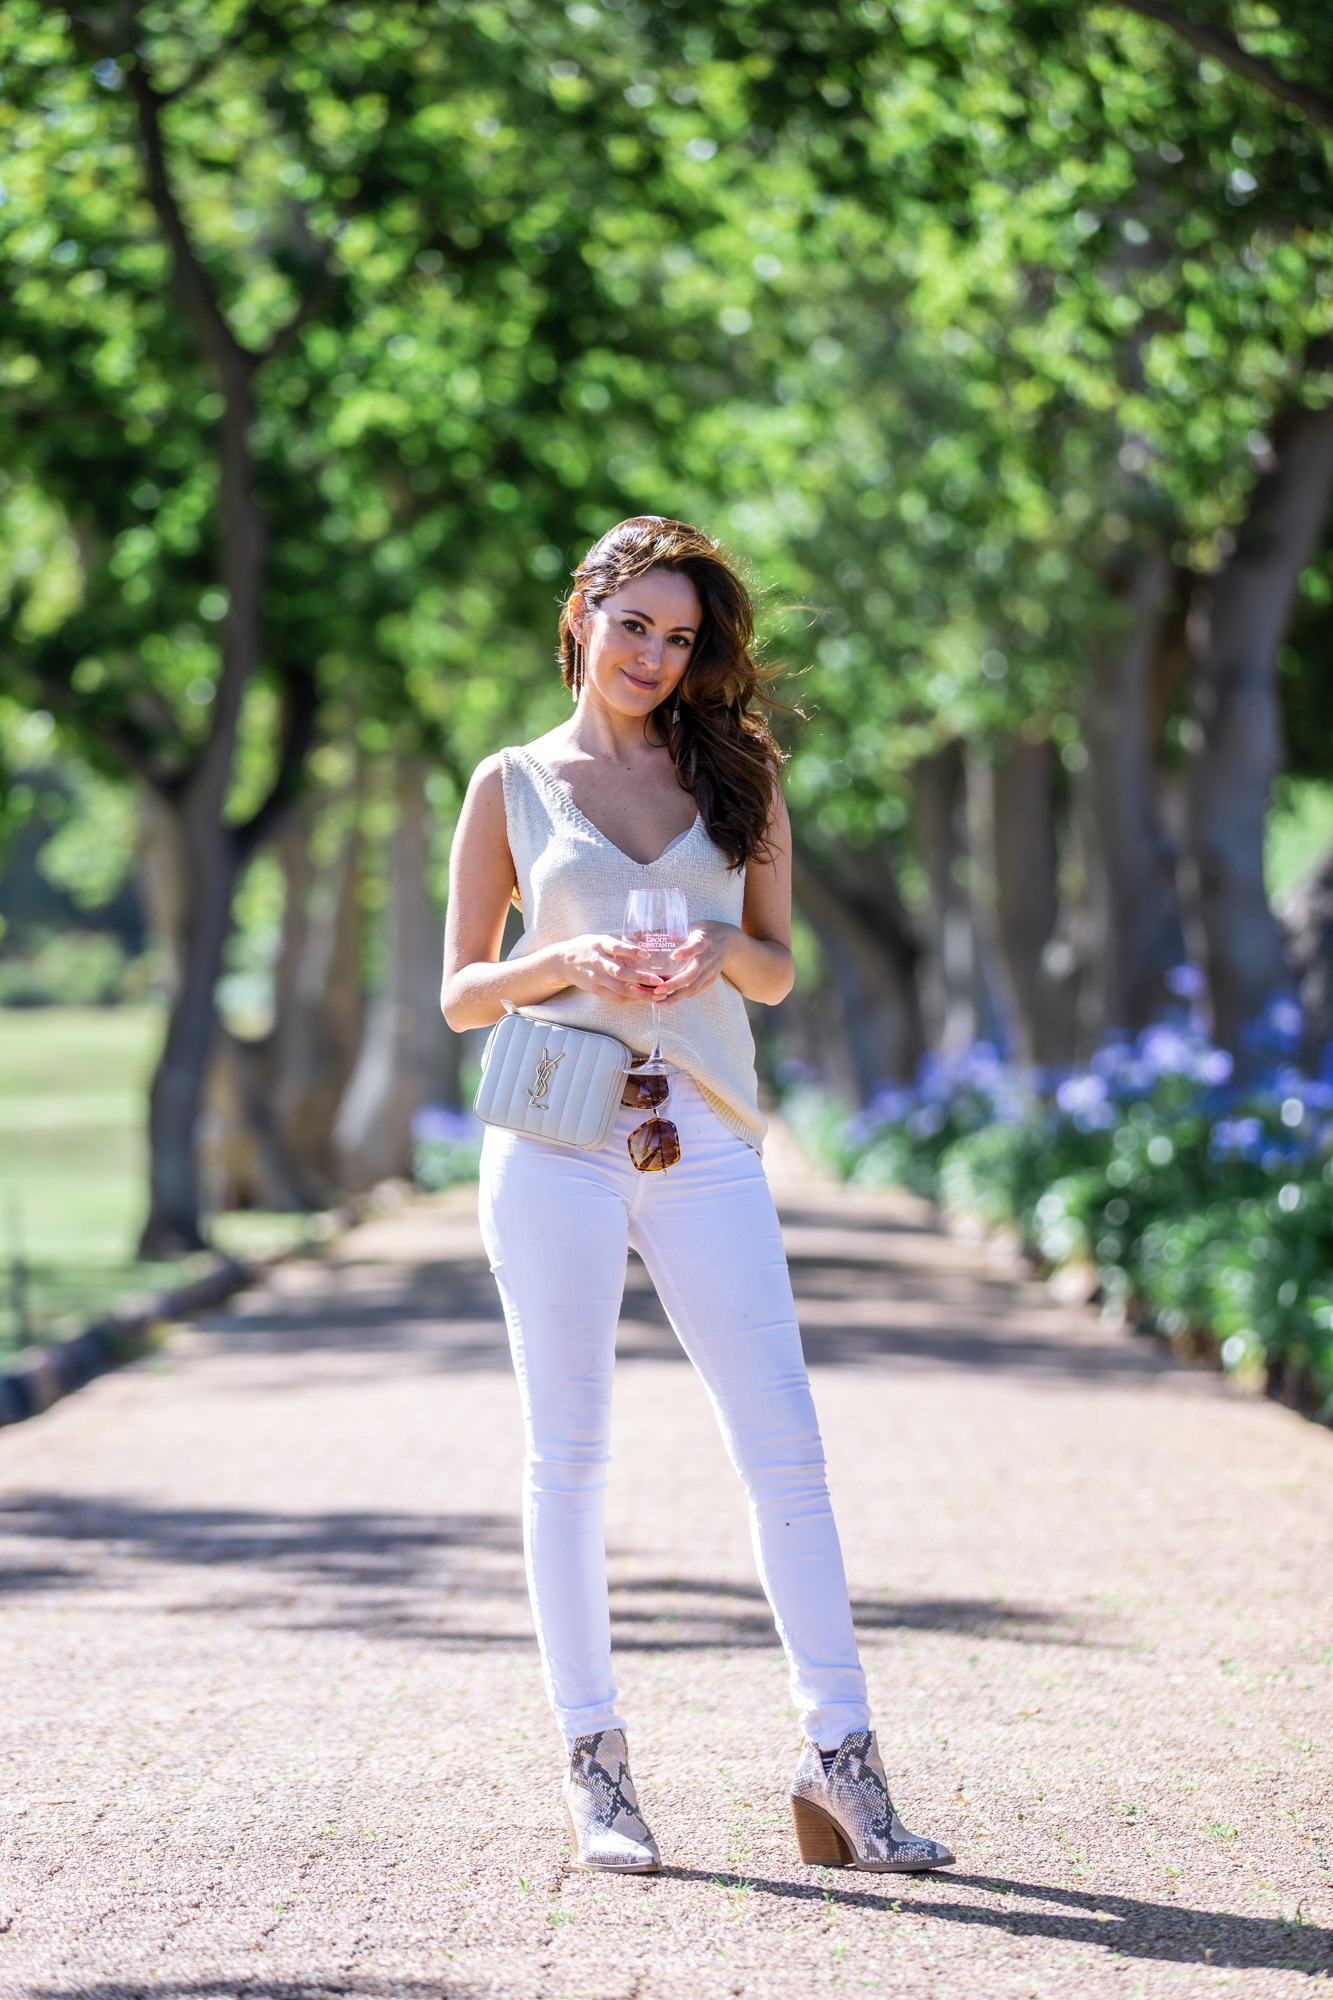 groot constantia cape town, constantia wine region cape town, what to do in cape town, wineries in cape town, oldest winery in south africa, white ysl belt bag